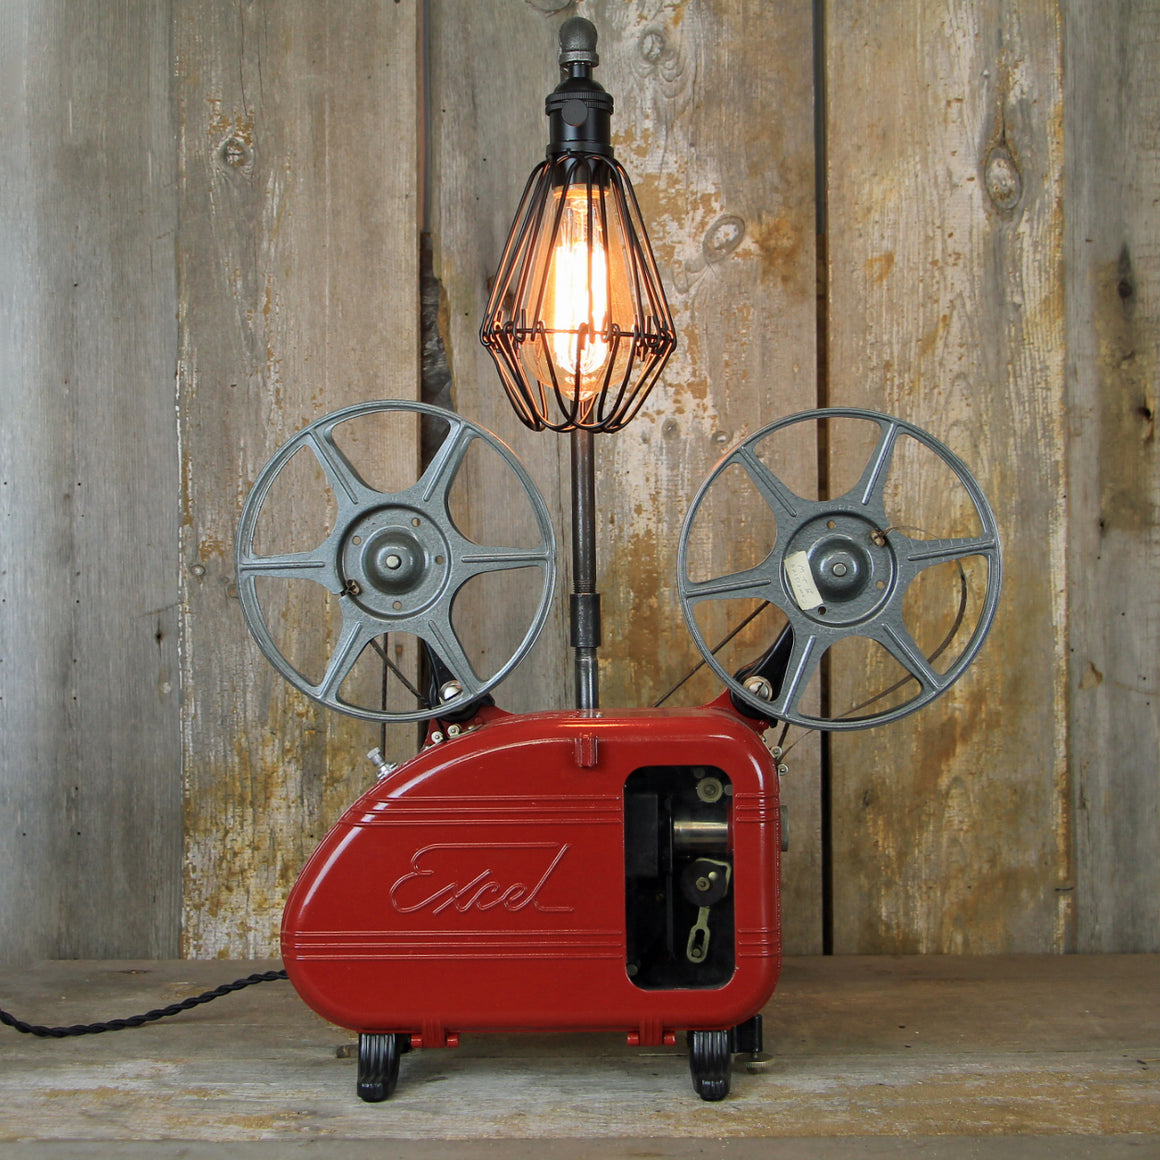 Projector Desk Lamp with Art Deco Styling - Steampunk Table Lamp - A Great Movie Lovers Lamp #1924 - The Lighting Works